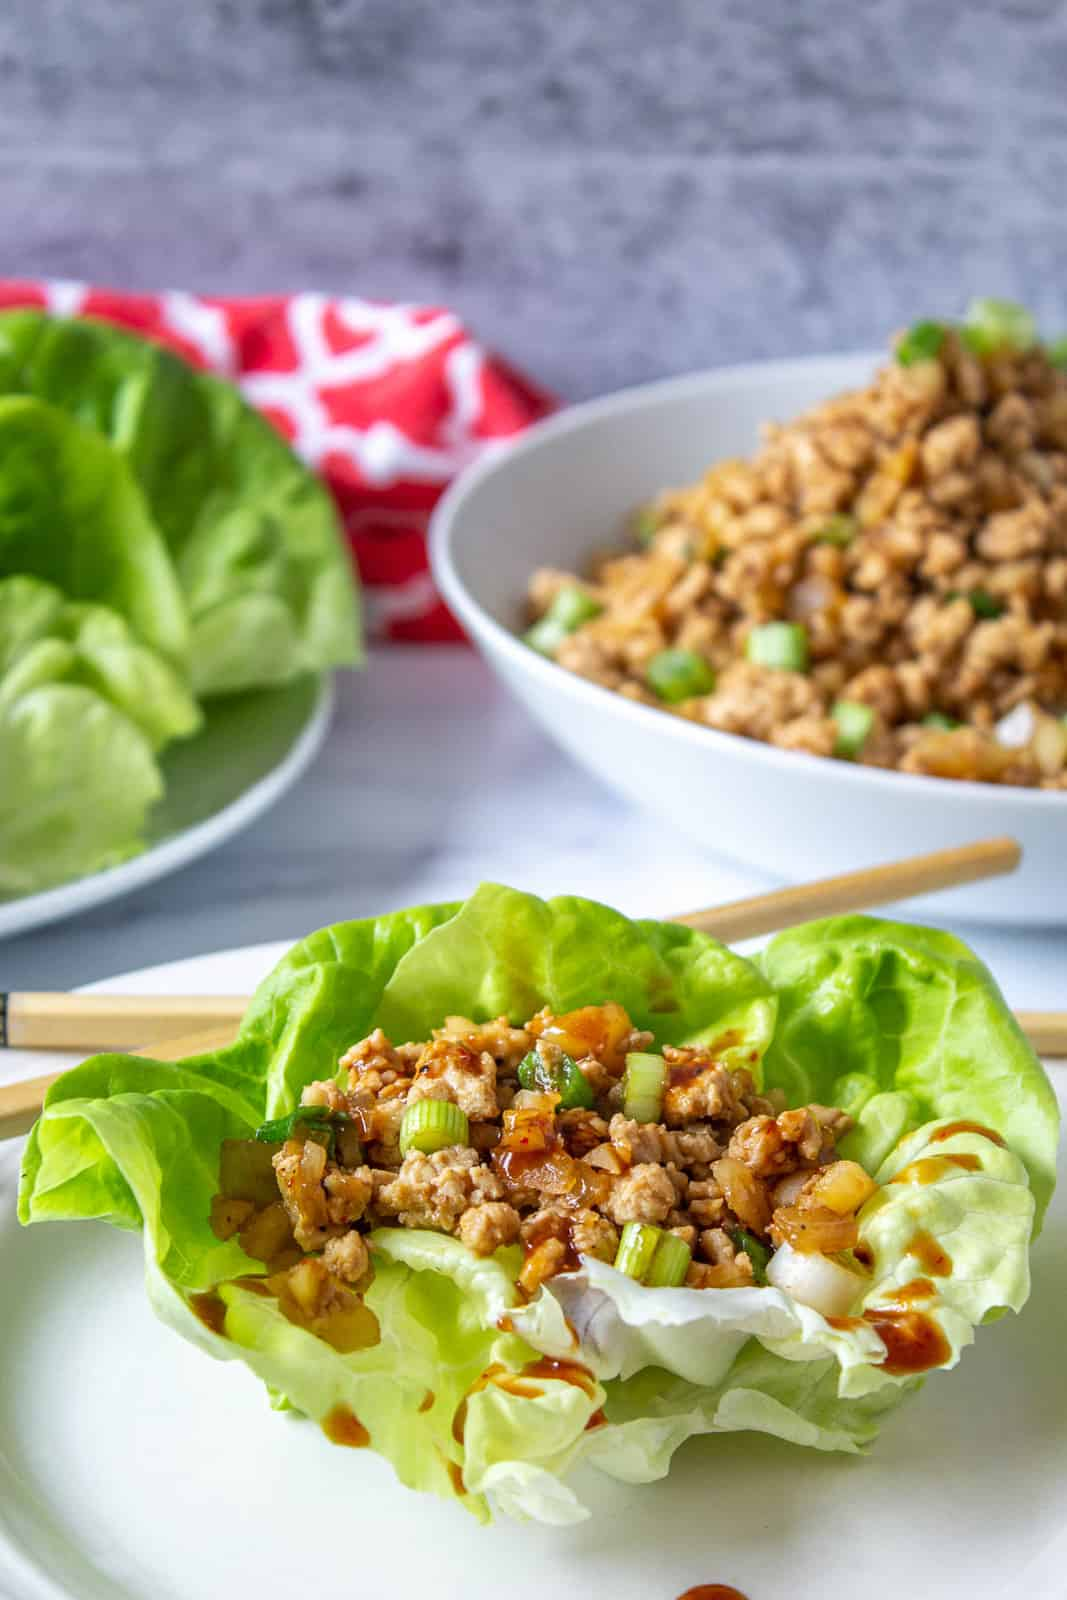 A lettuce leaf filled with chopped chicken and drizzled with a brown sauce.